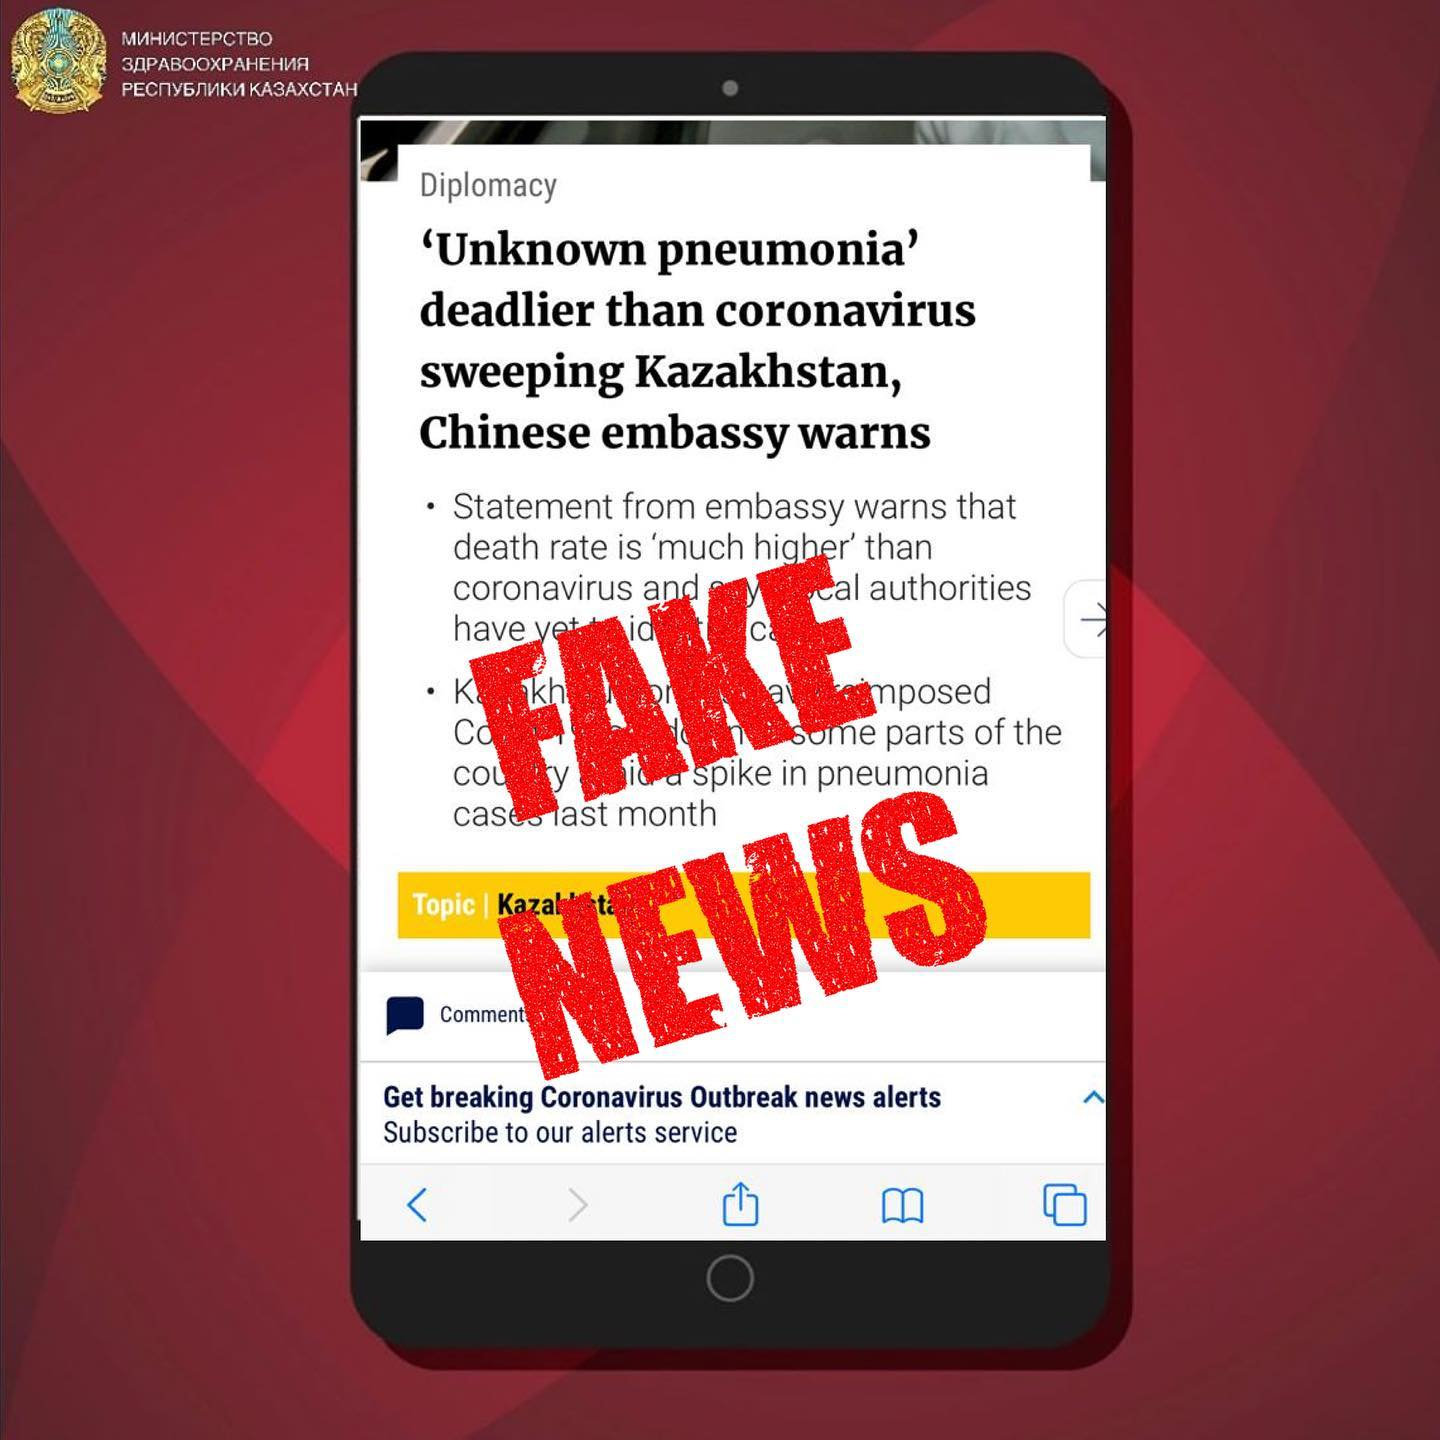 Some Chinese media disseminate information about reported cases of unknown pneumonia in Kazakhstan that seems to be more deadly than coronavirus.